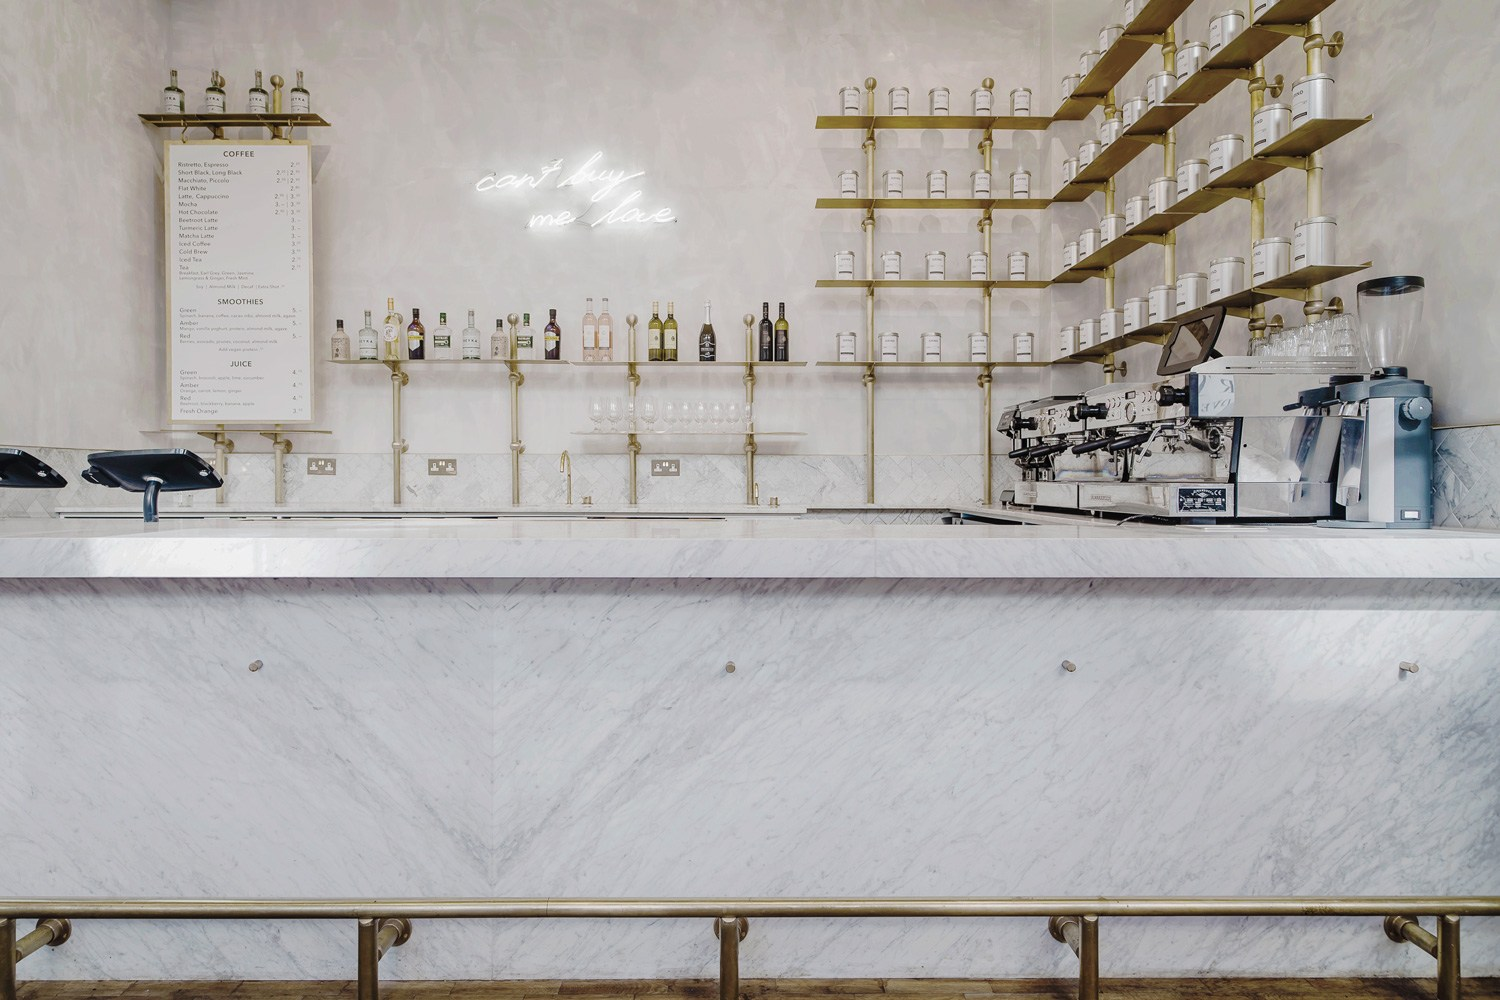 Places: The Royal Exchange Grind, London